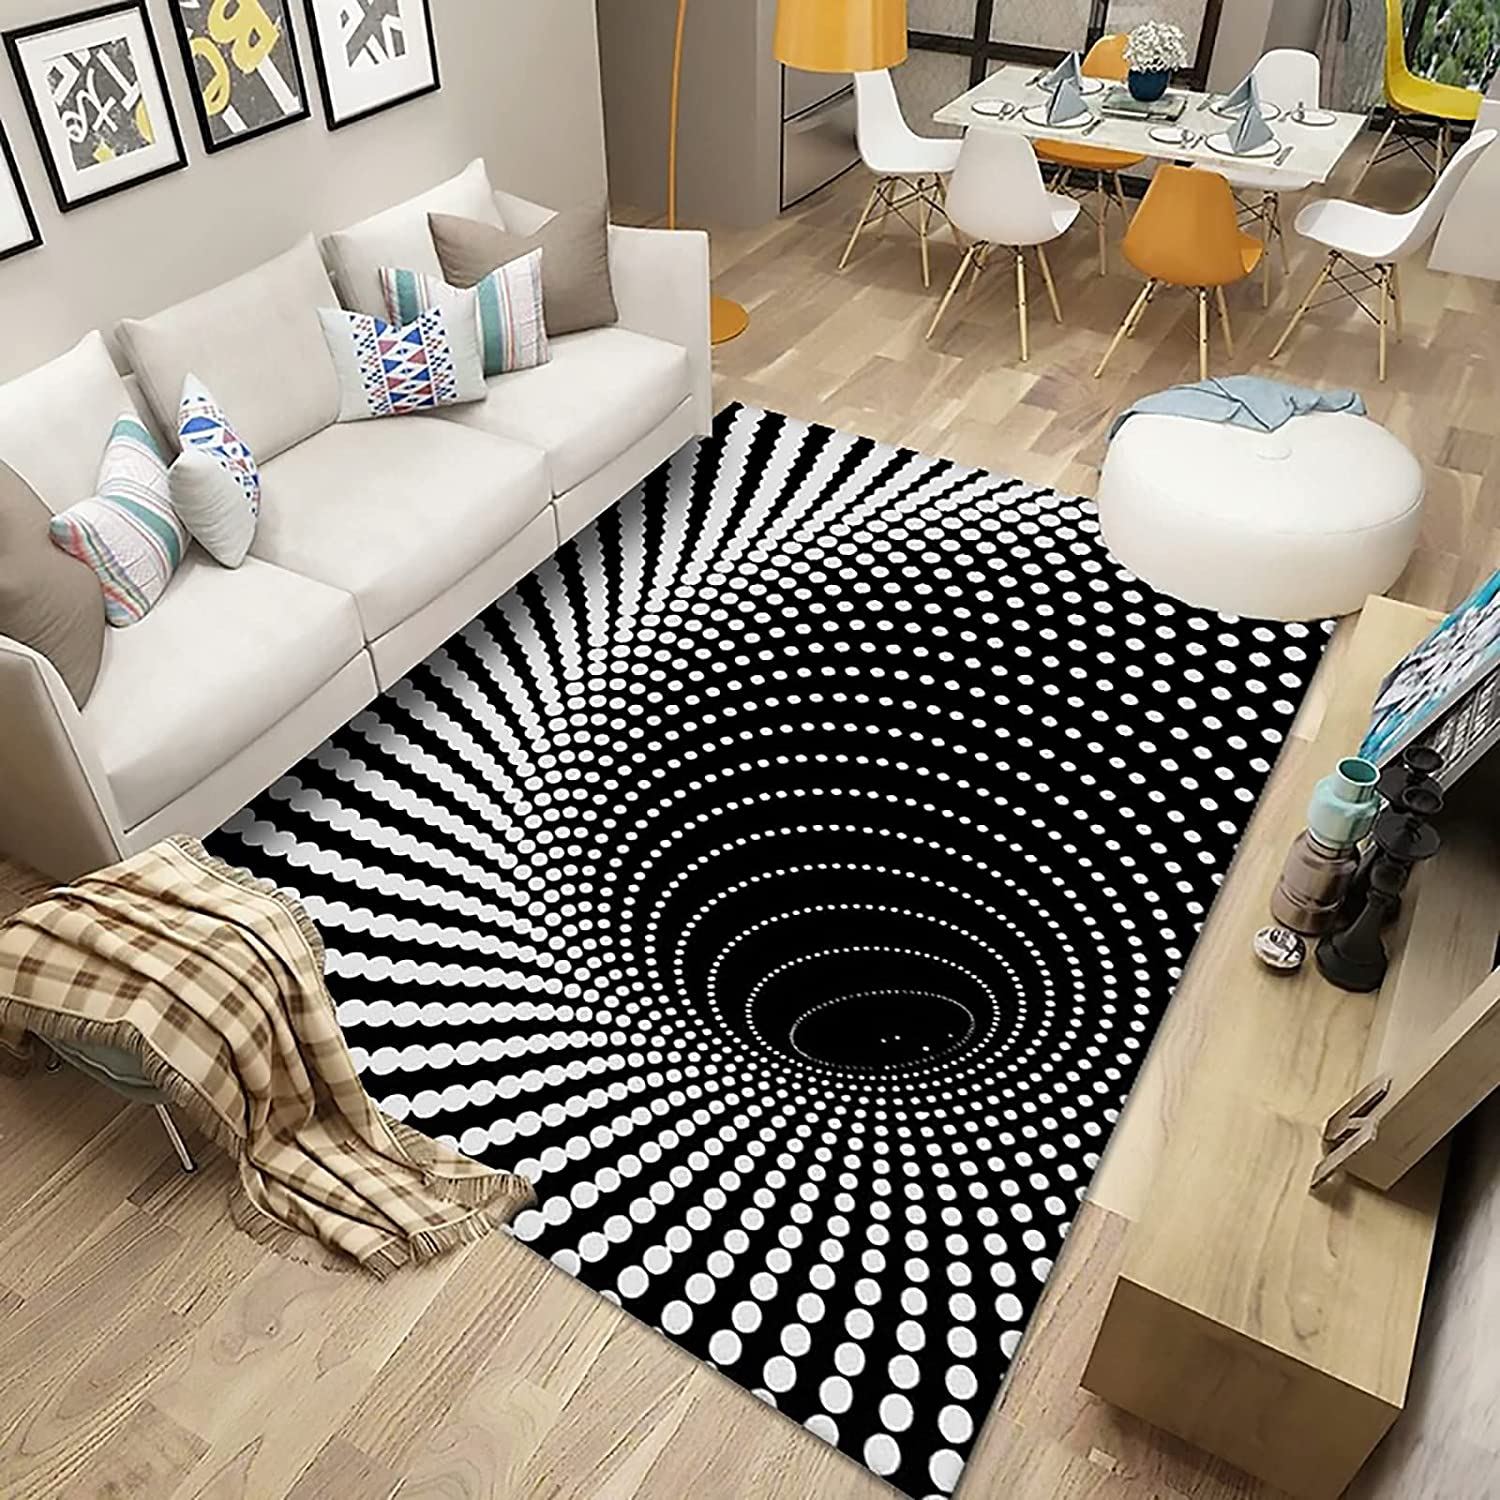 3D Area Rug Vortex Optical Illusion Al sold Oklahoma City Mall out. Carpet for Lvin Rugs Doormat